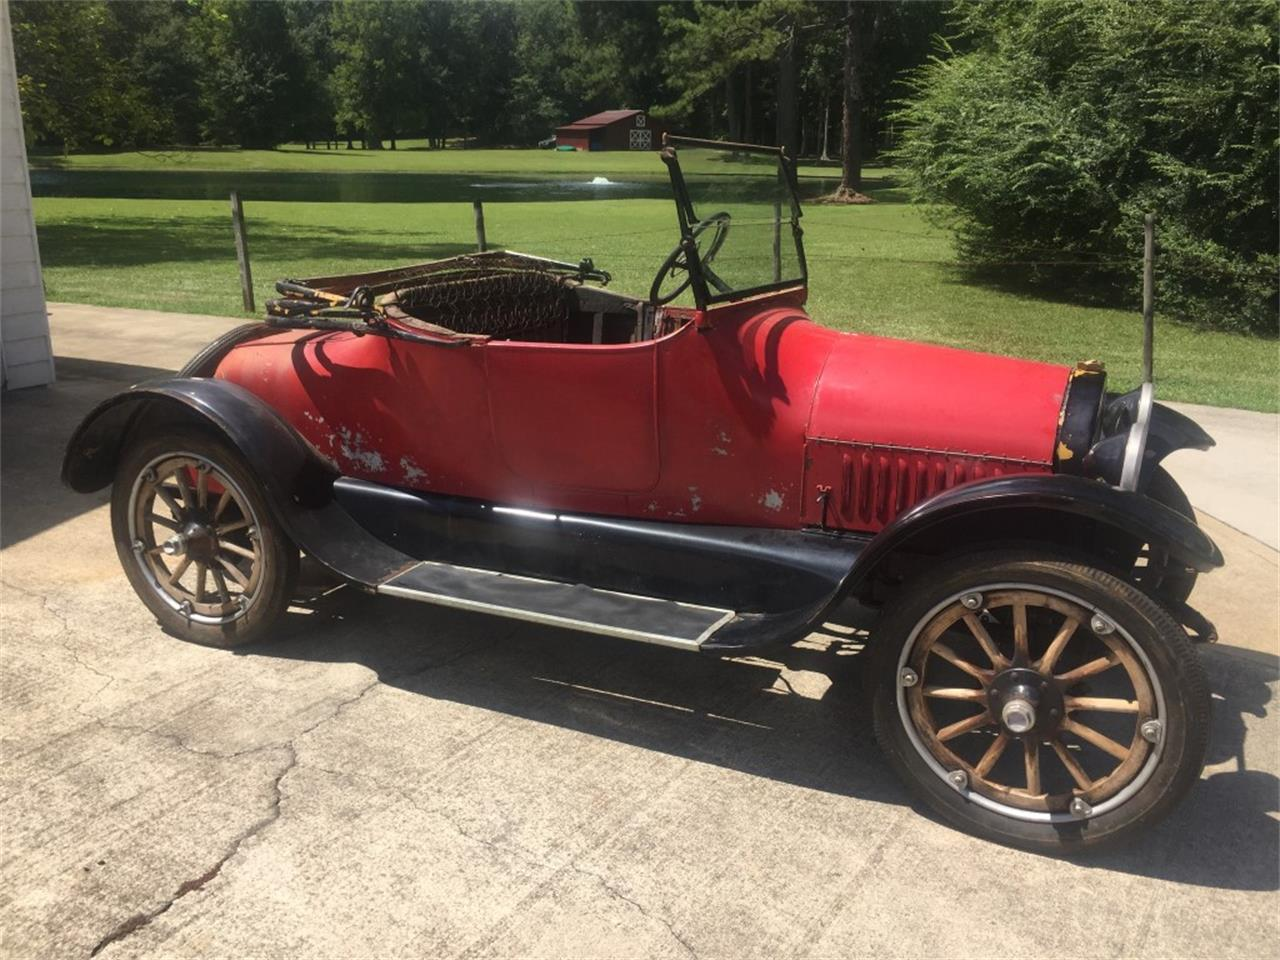 Large Picture of 1918 Buick Convertible located in Tyrone Georgia - $8,950.00 - OP5H